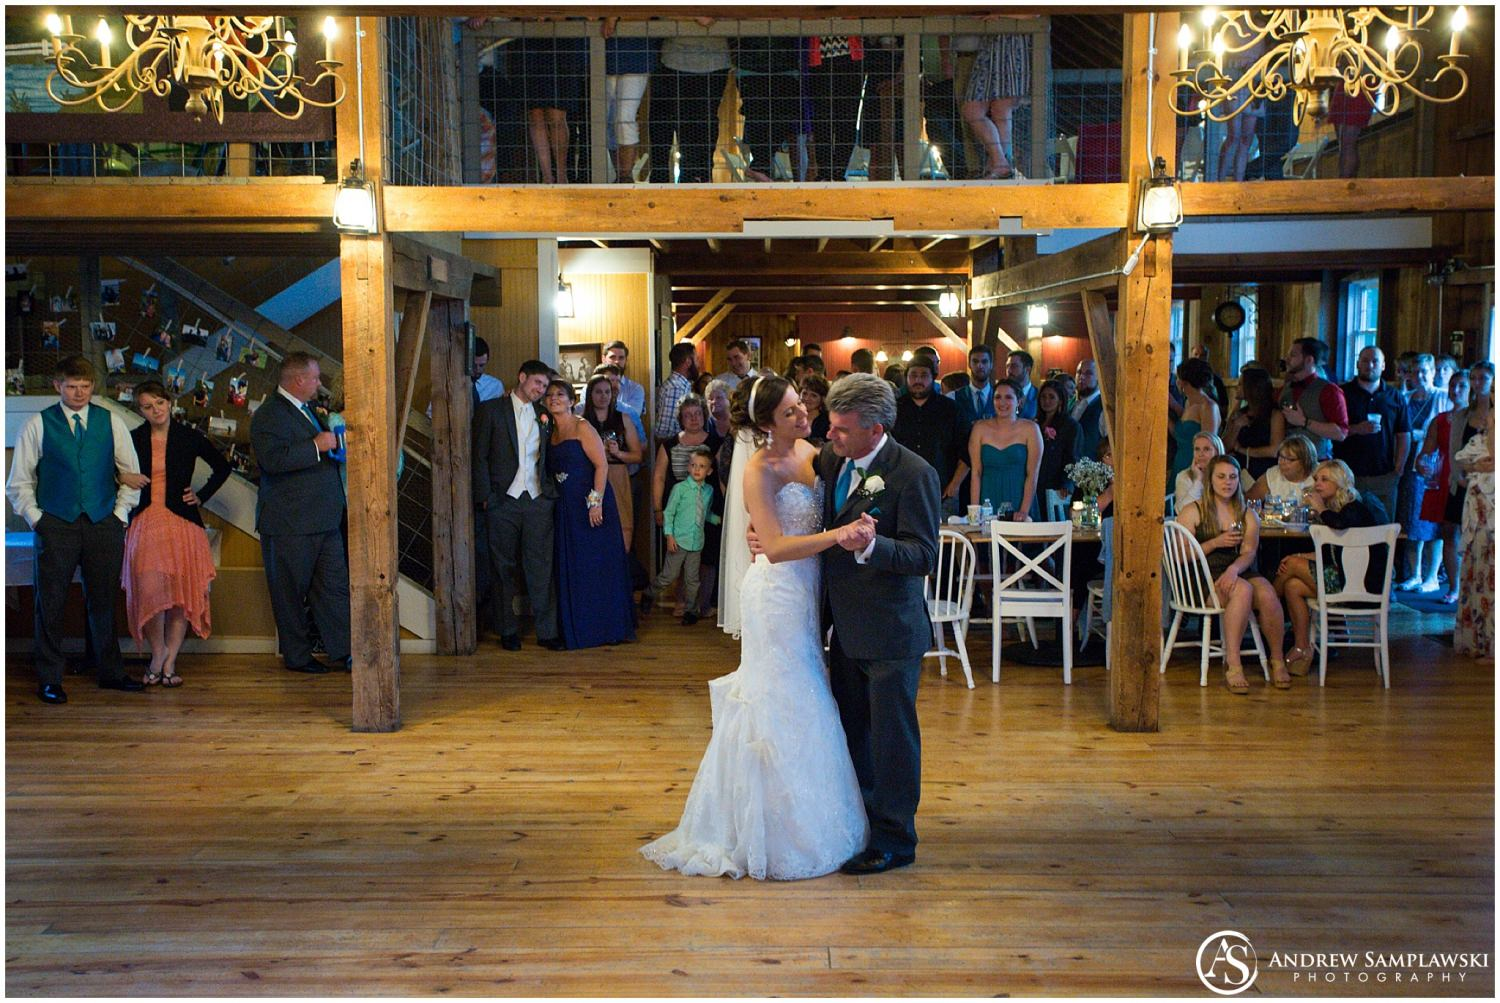 The Barn Harvest Moon Wisconsin Wedding Andrew Samplawski Photography